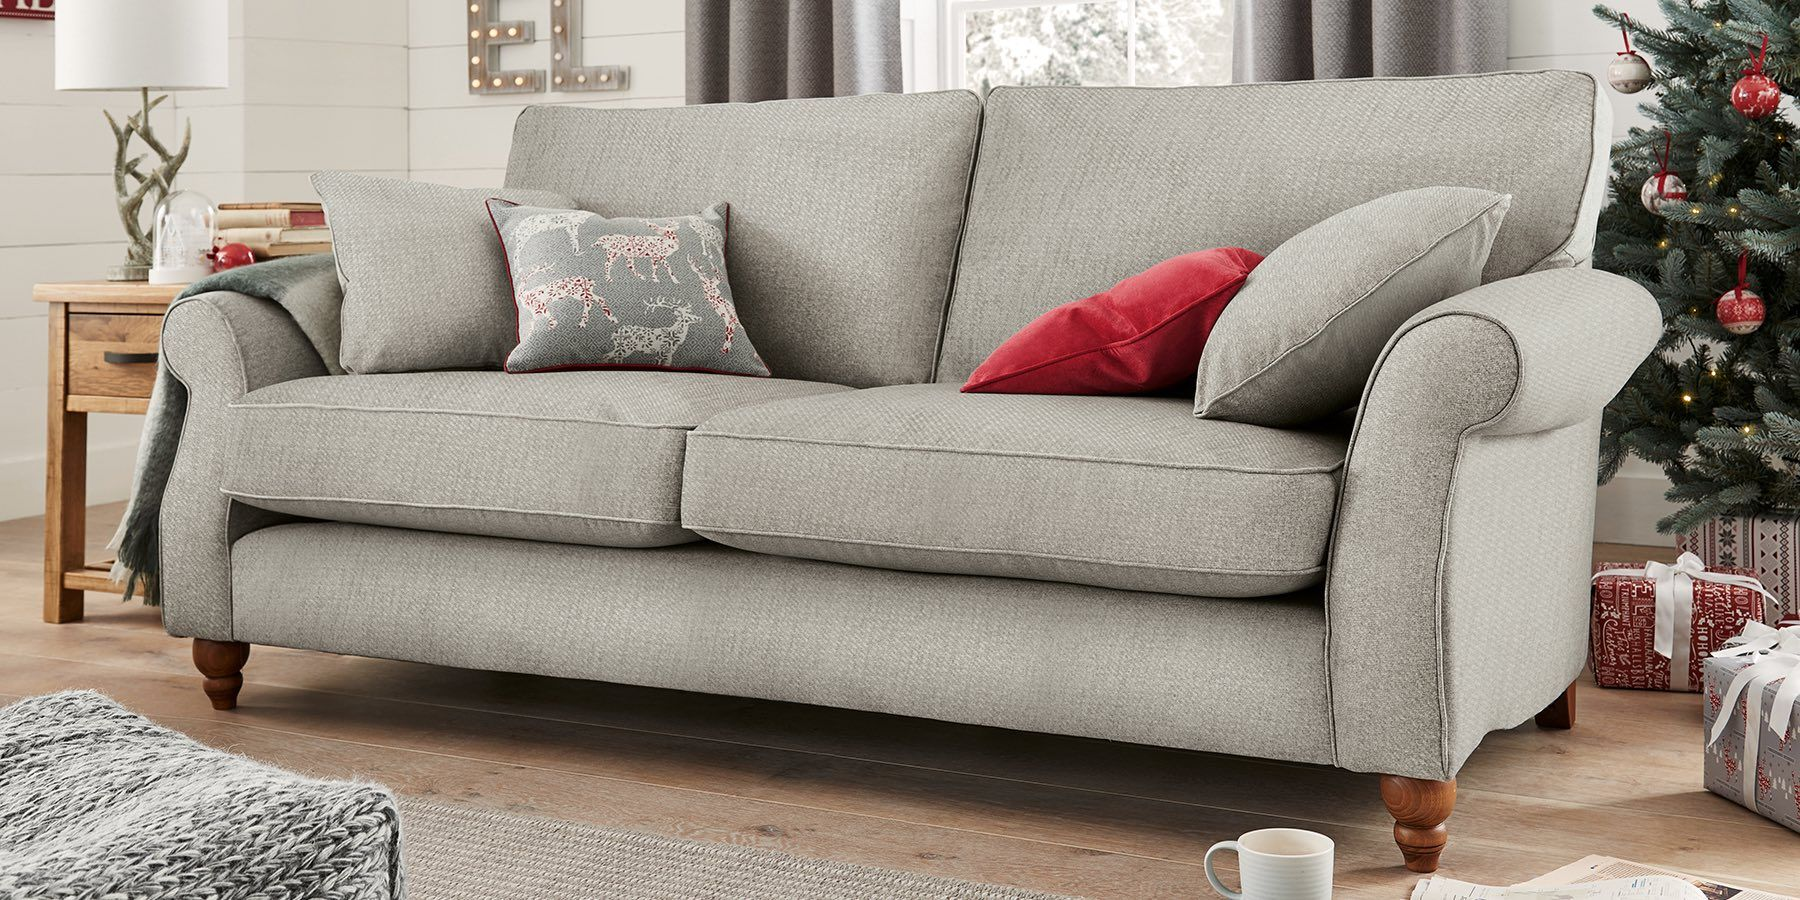 Big Sofa Online Shop Buy Ashford Large Sofa 3 Seats Cosy Twill Light Grey Low